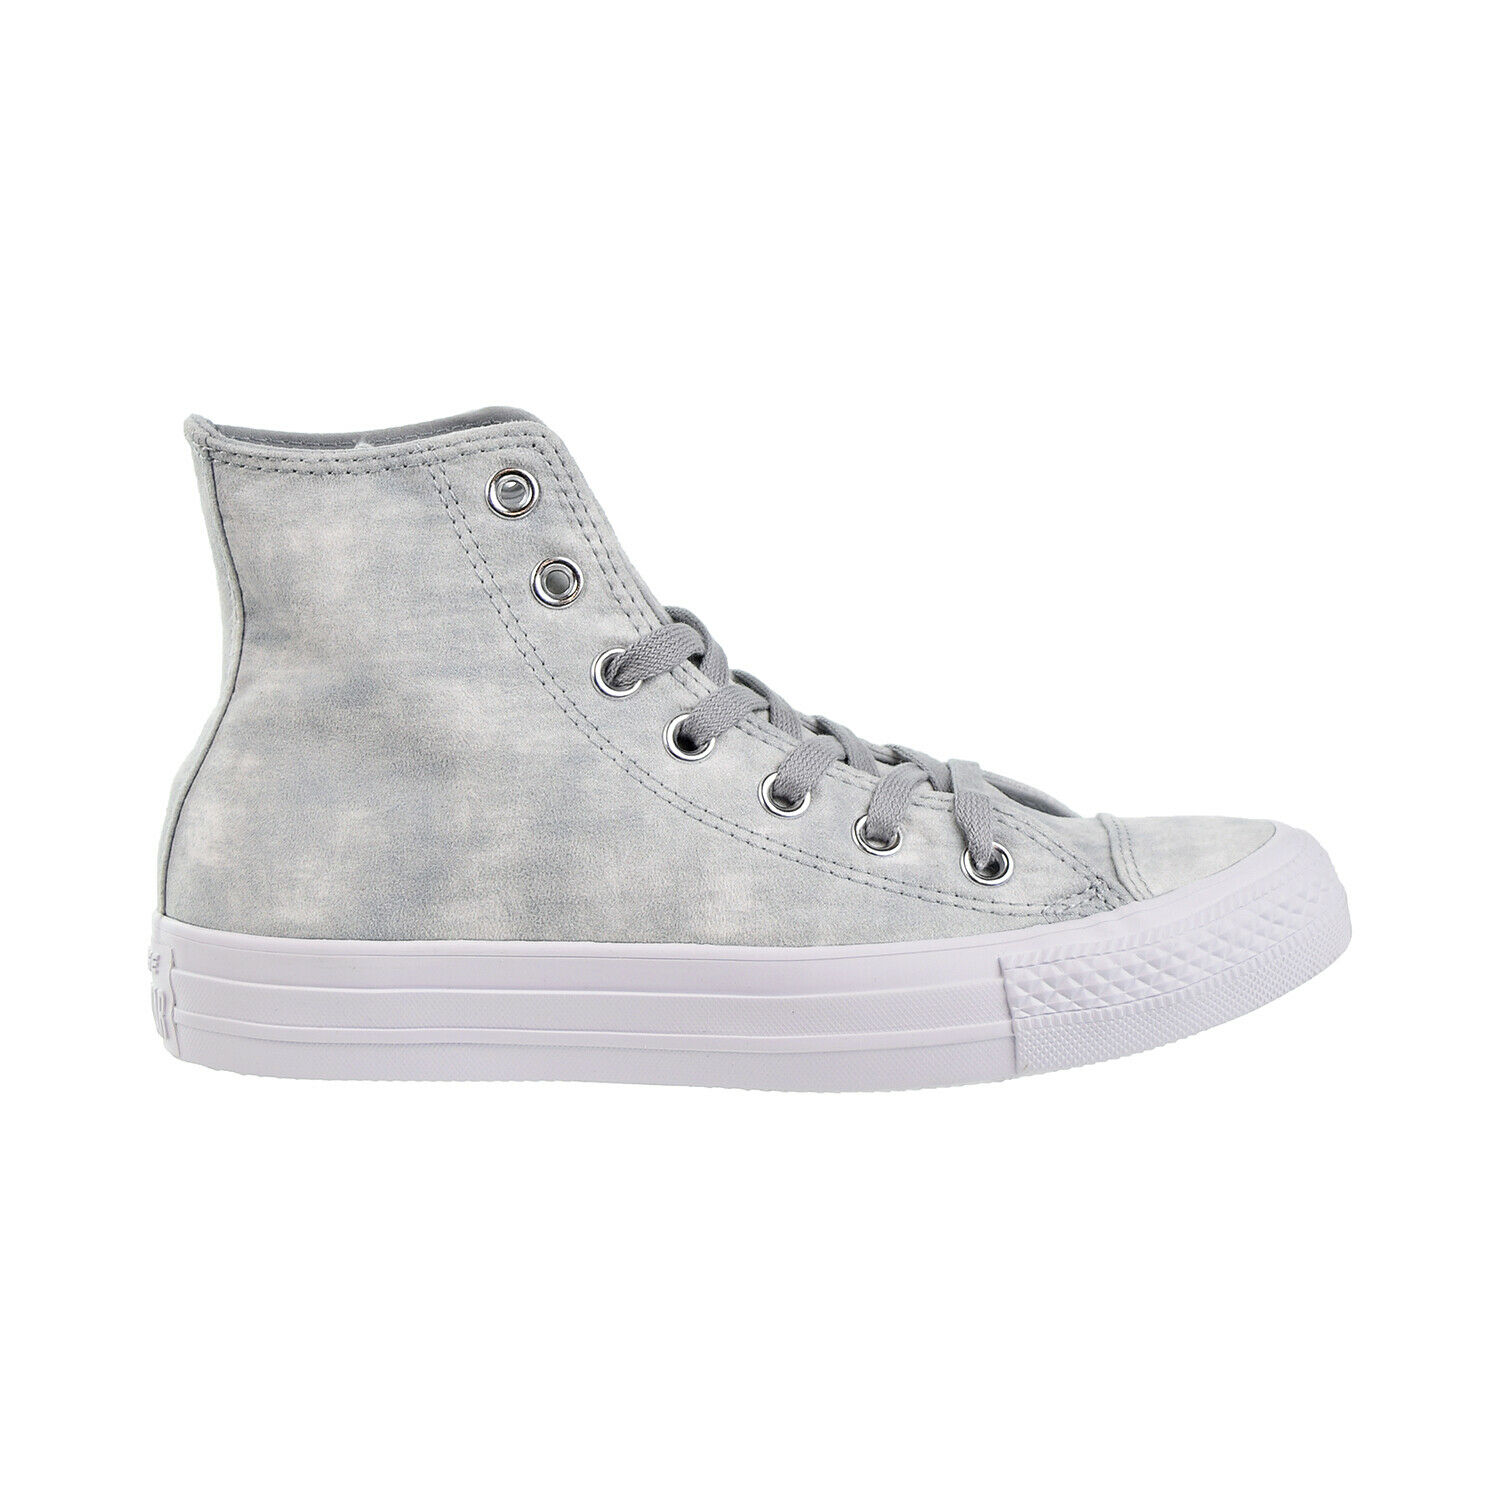 Converse Chuck Taylor All Star Hi Mens shoes Wolf Grey Wolf Grey White 159651c